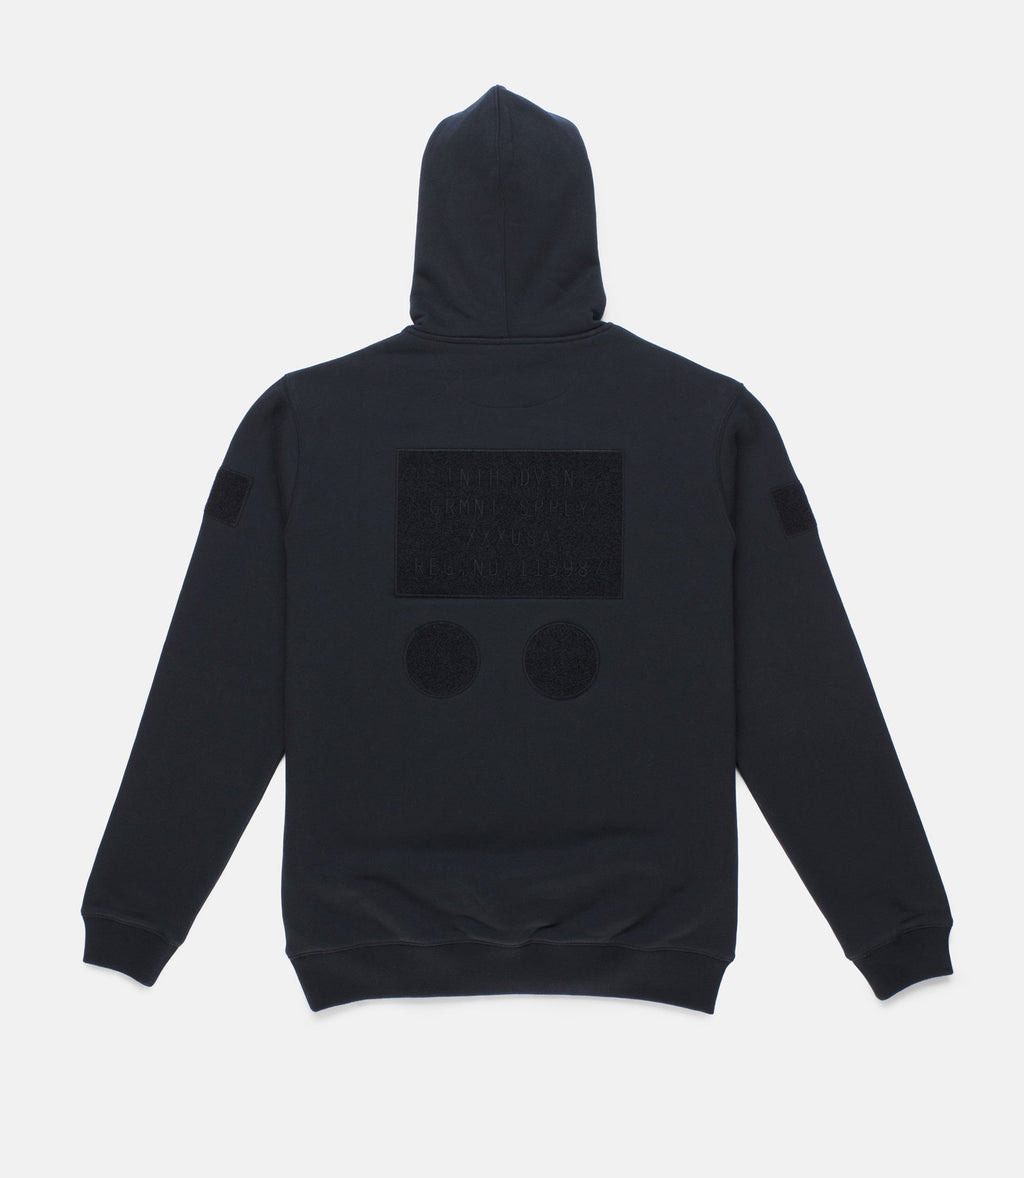 10Deep - A.W.O.L. Men's Hoody, Black - The Giant Peach